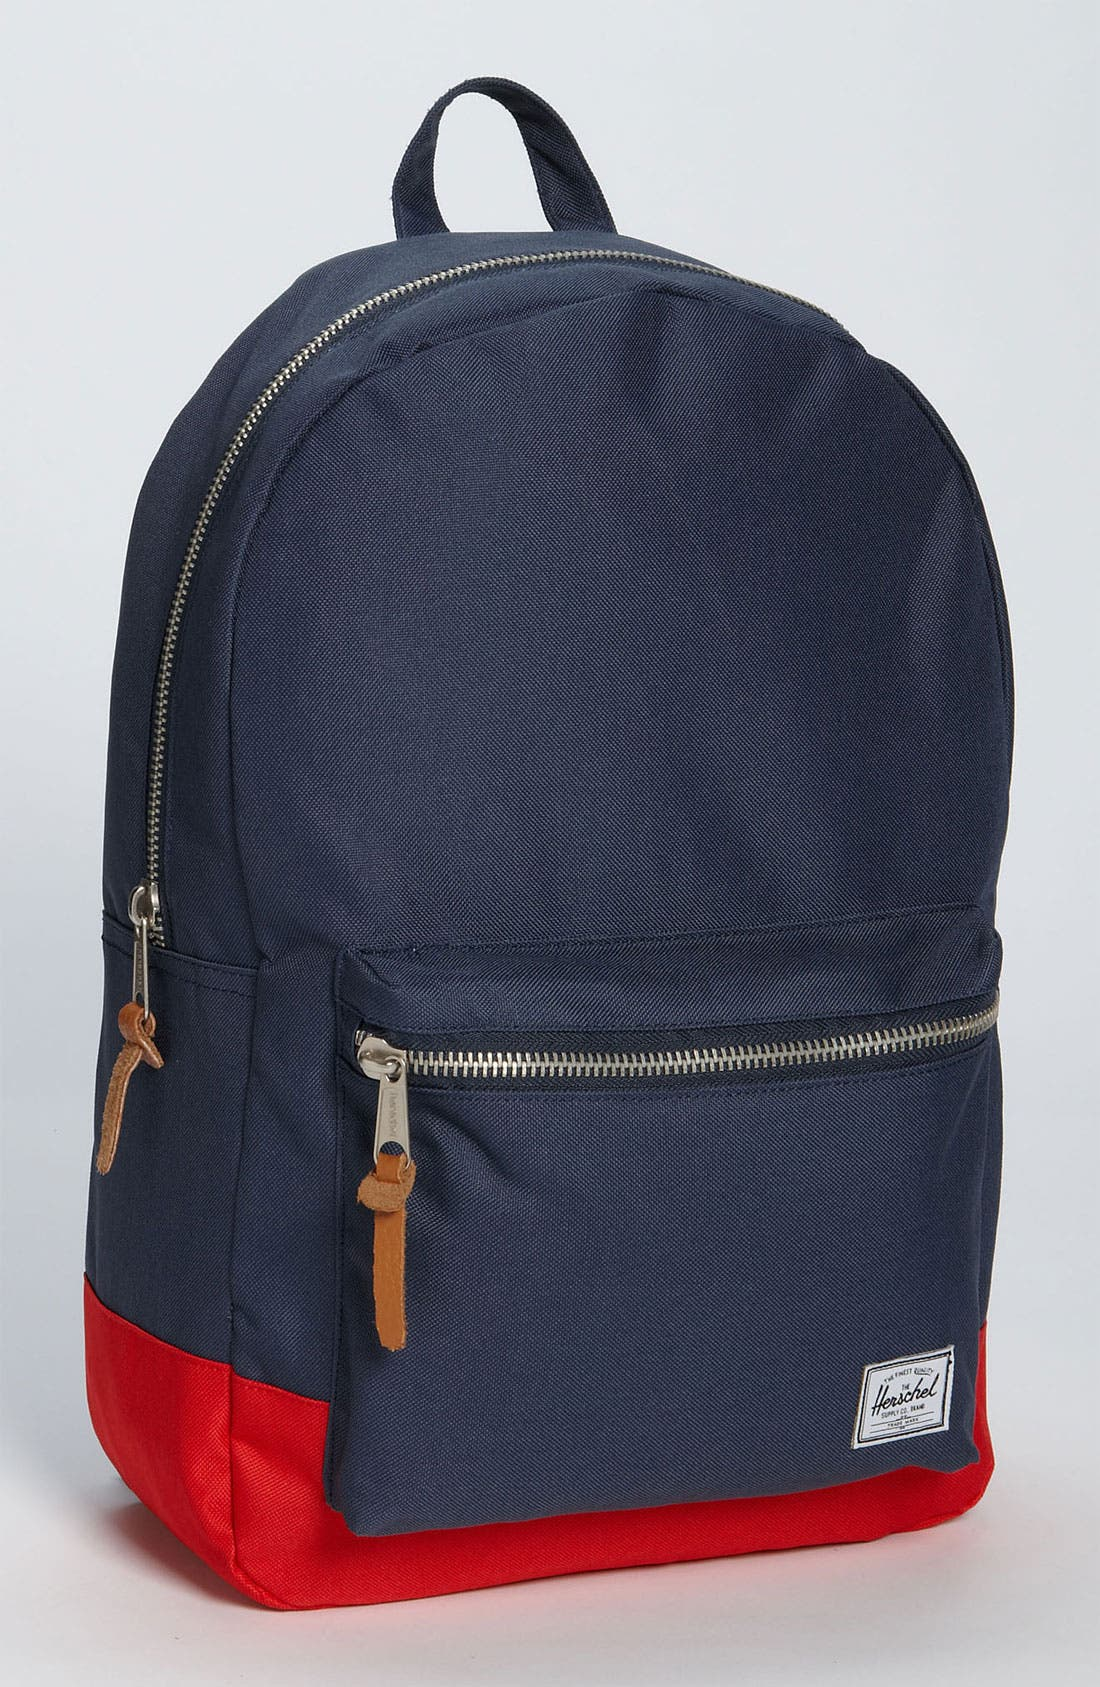 Settlement Backpack,                         Main,                         color, Navy/ Red